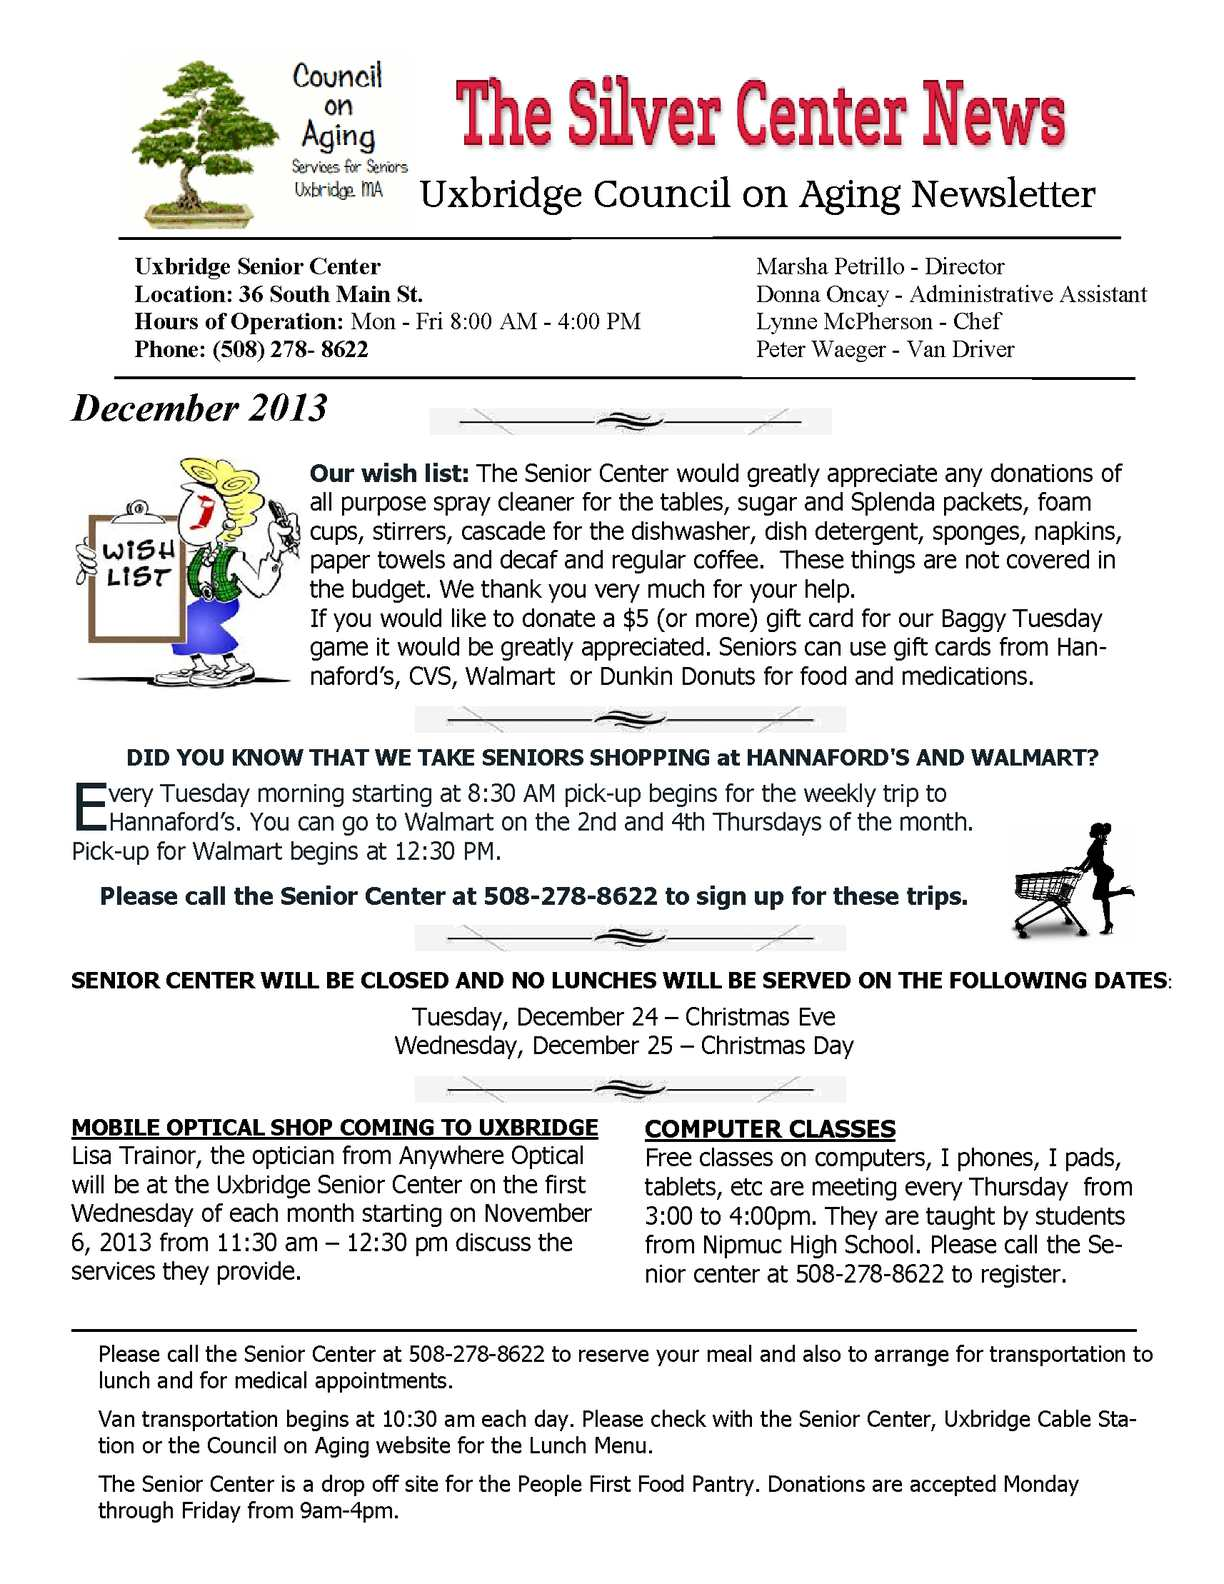 Calaméo - Uxbridge COA December Newsletter